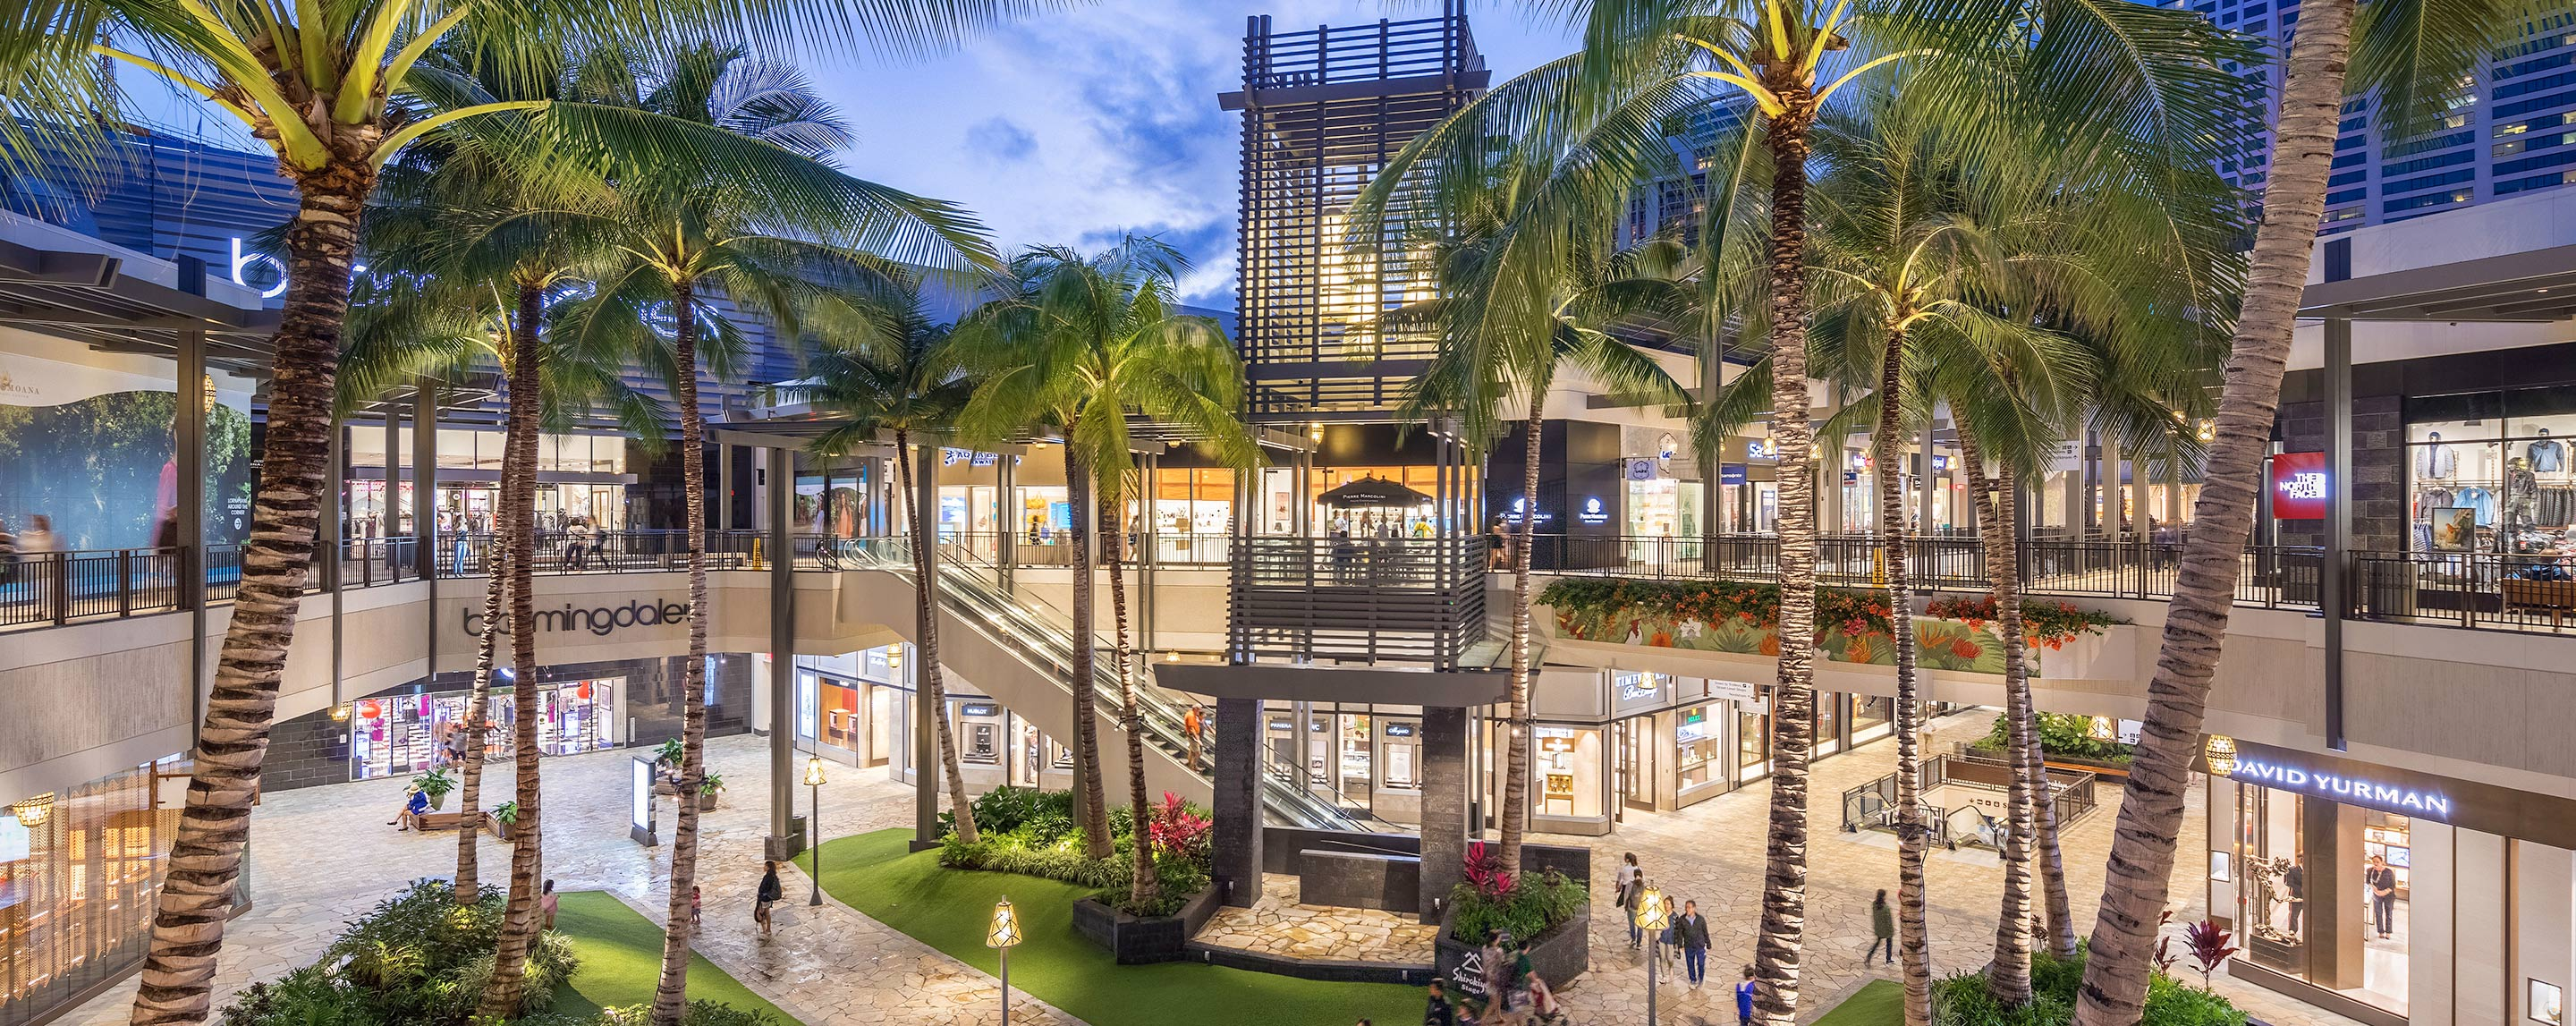 At dusk, the exterior of Ala Moana Center lights up with palm trees just outside the building.